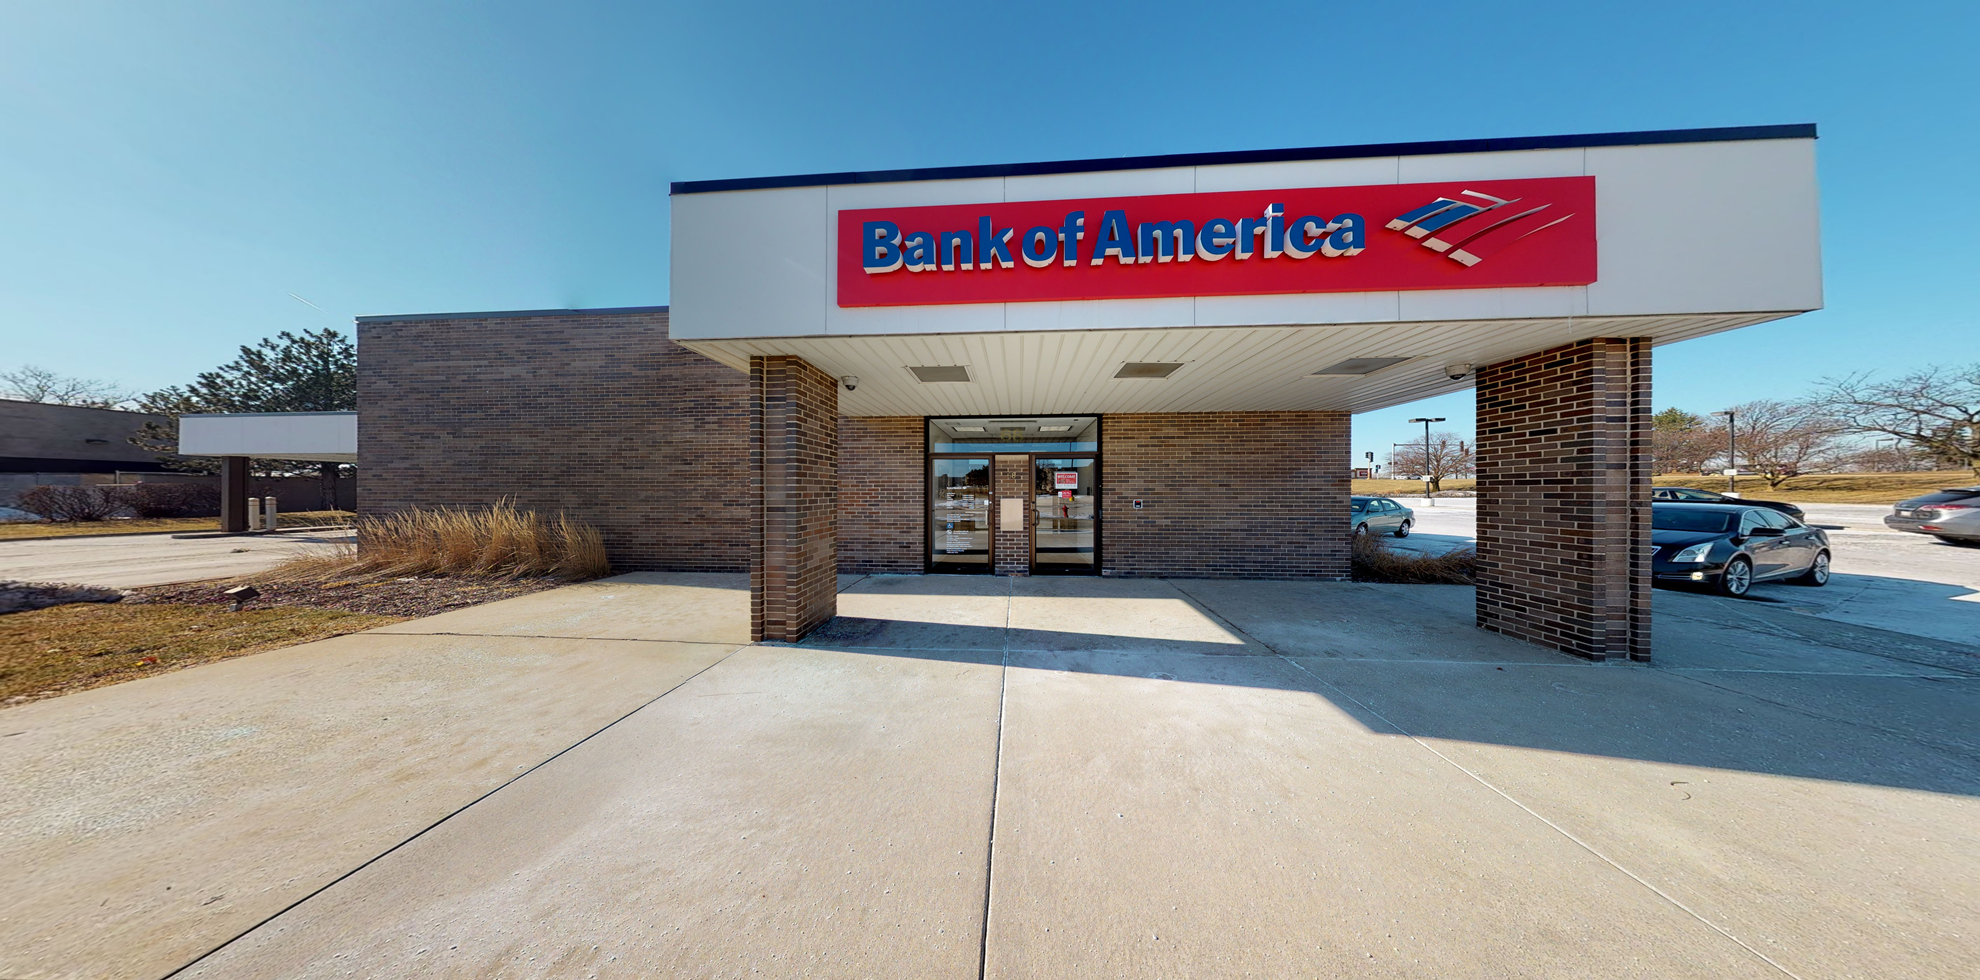 Bank of America financial center with drive-thru ATM   68 Stratford Dr, Bloomingdale, IL 60108